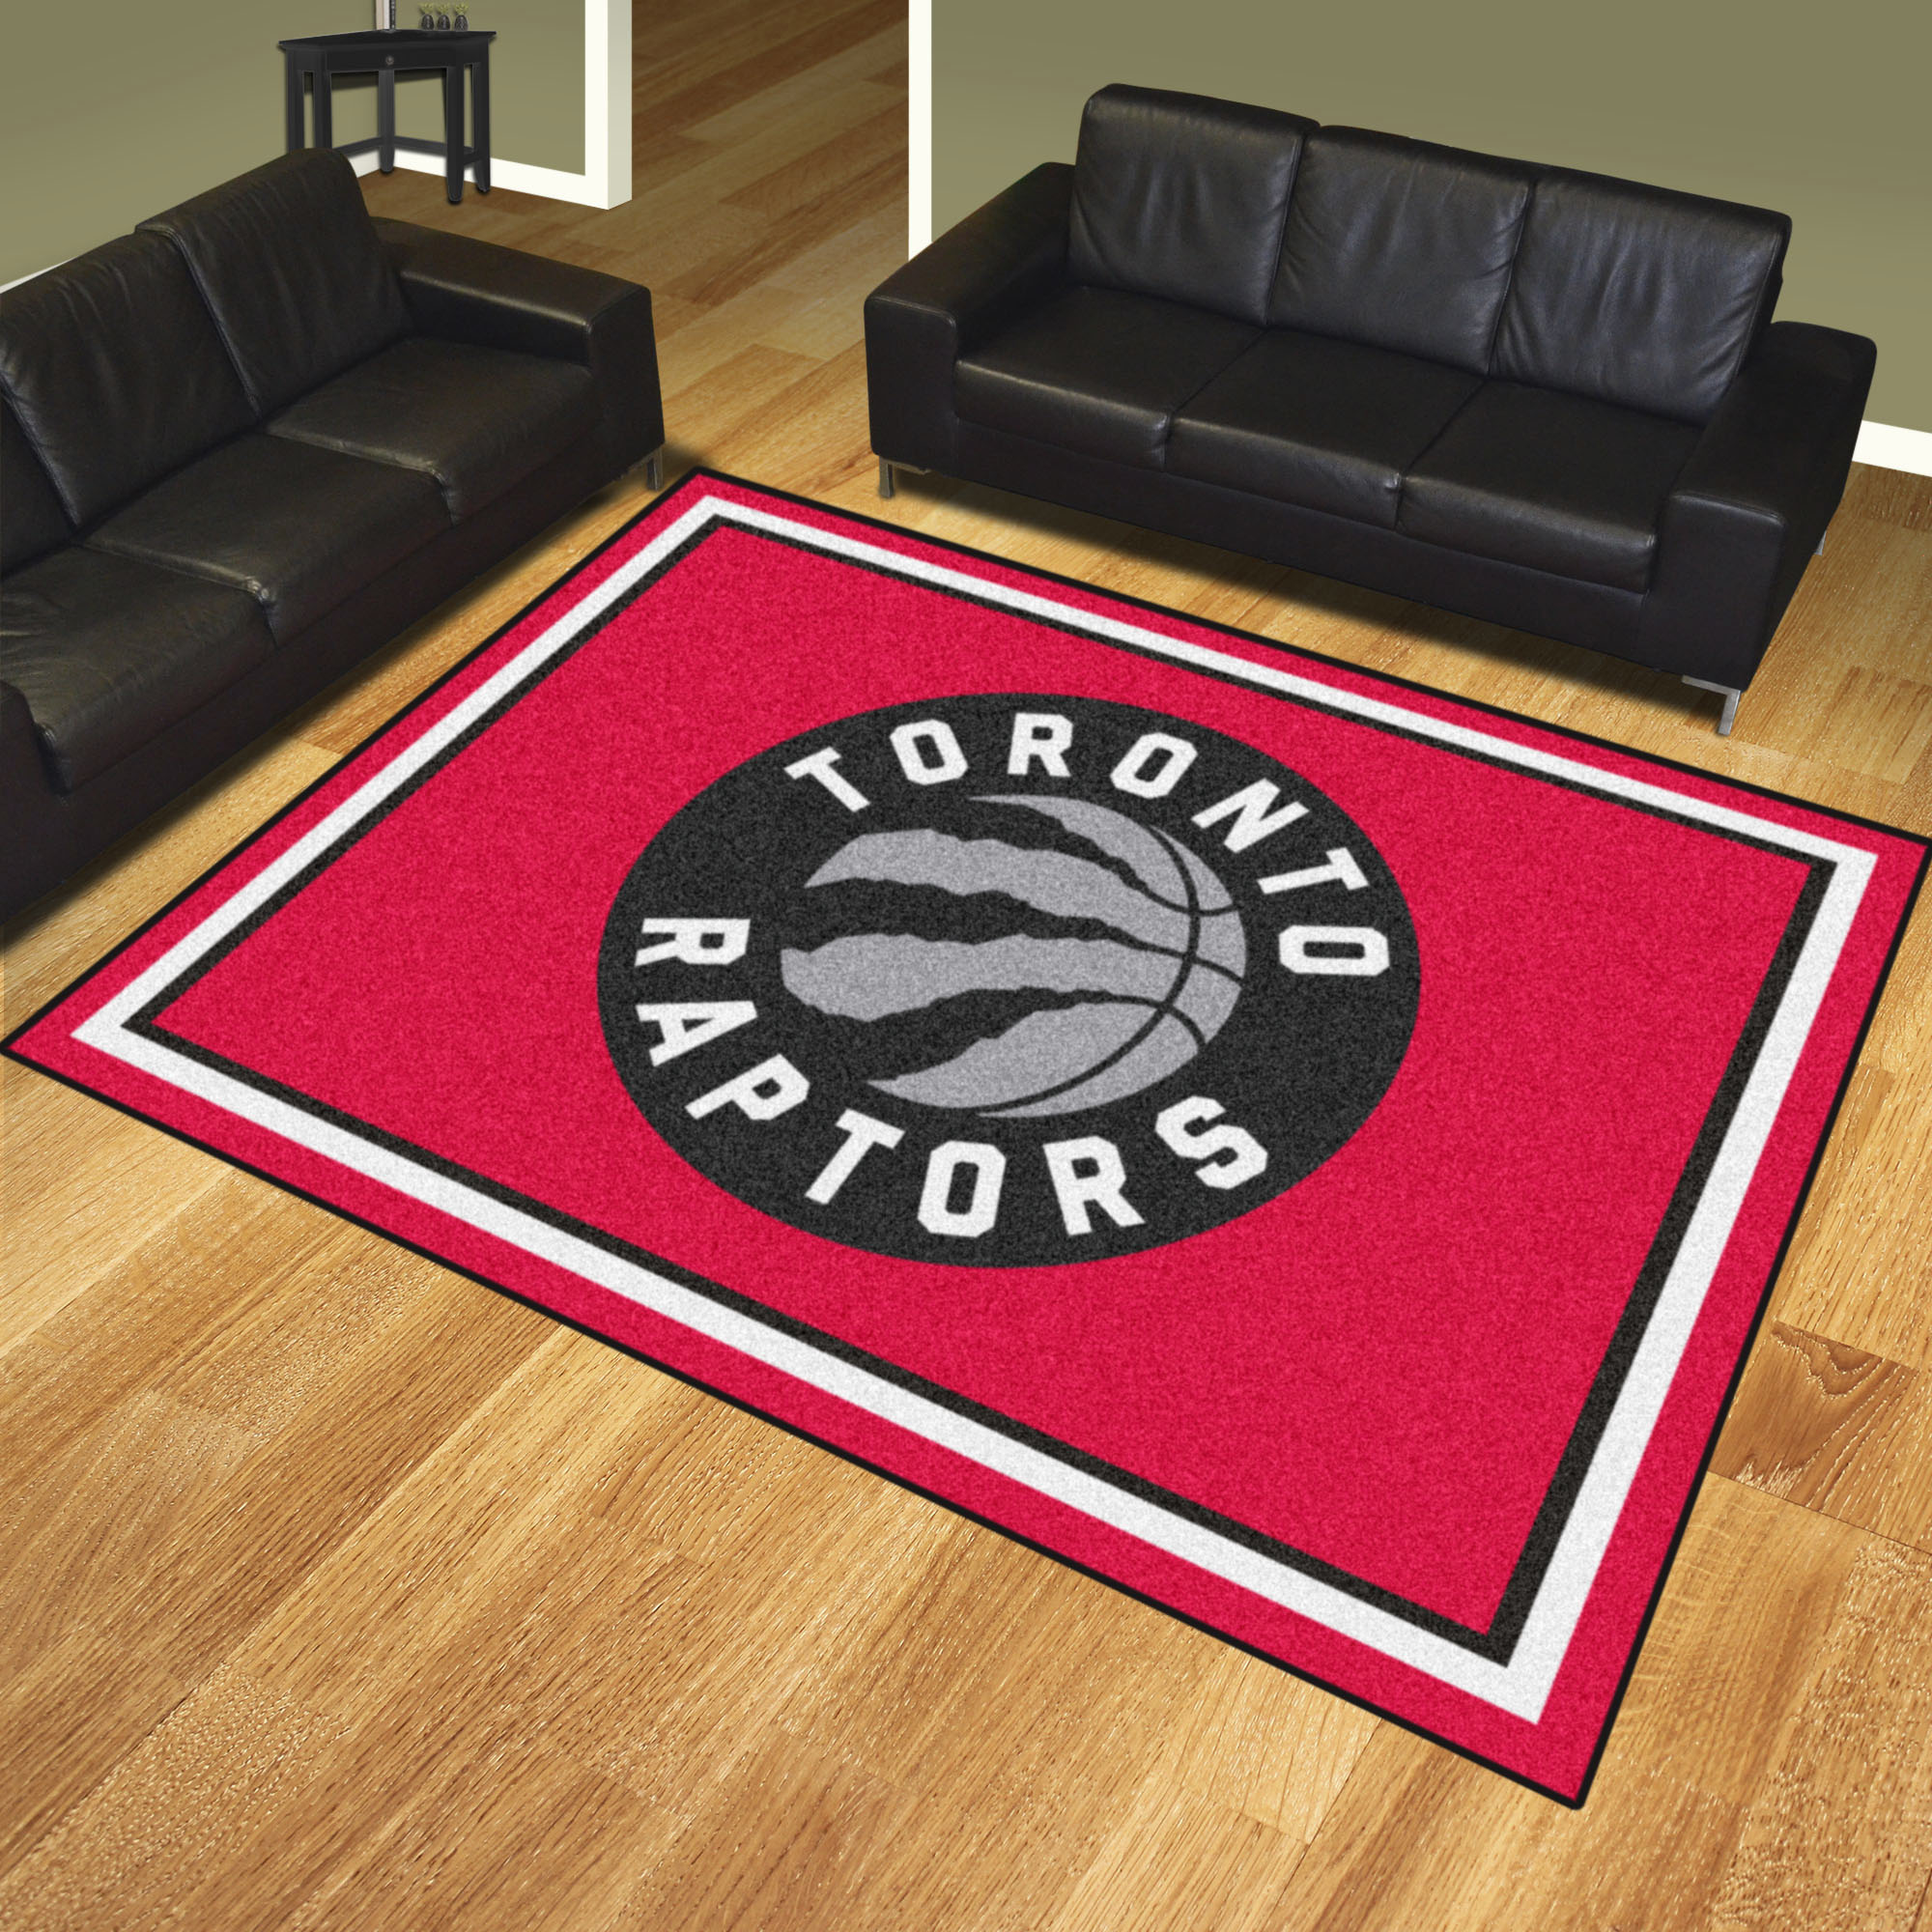 Toronto Raptors Ultra Plush 8x10 Area Rug